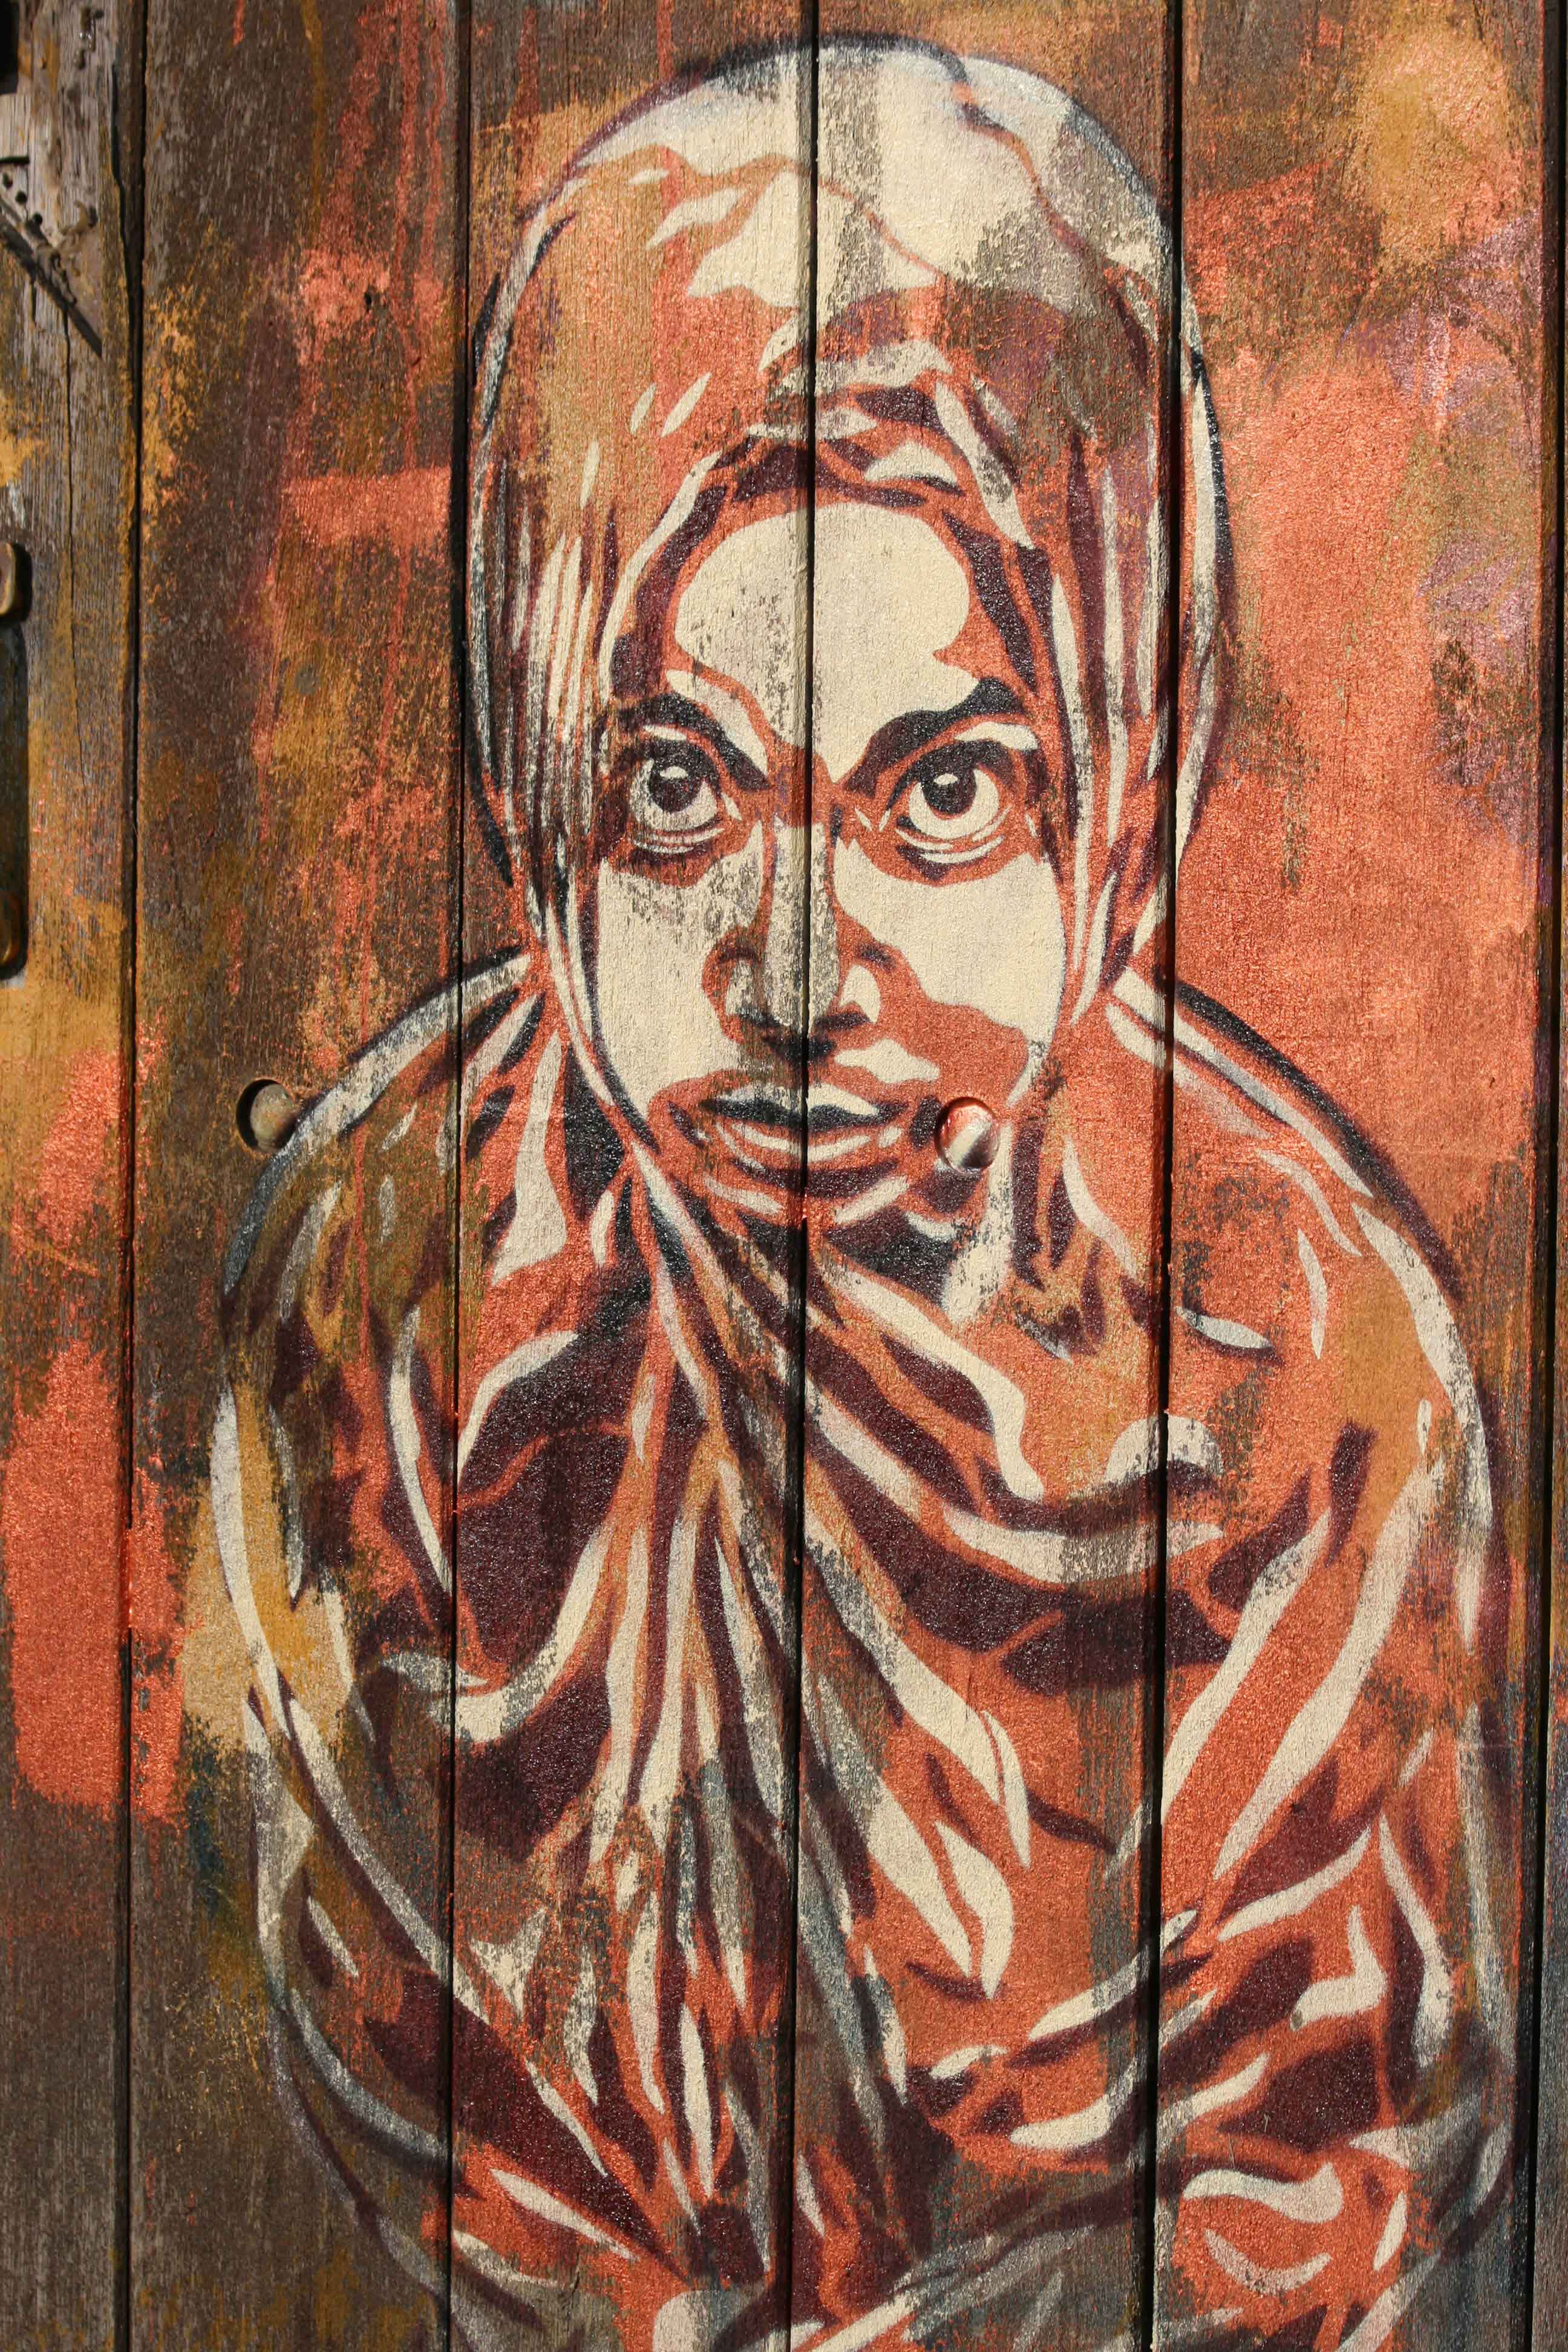 Covered Head - Street Art by C215 in London